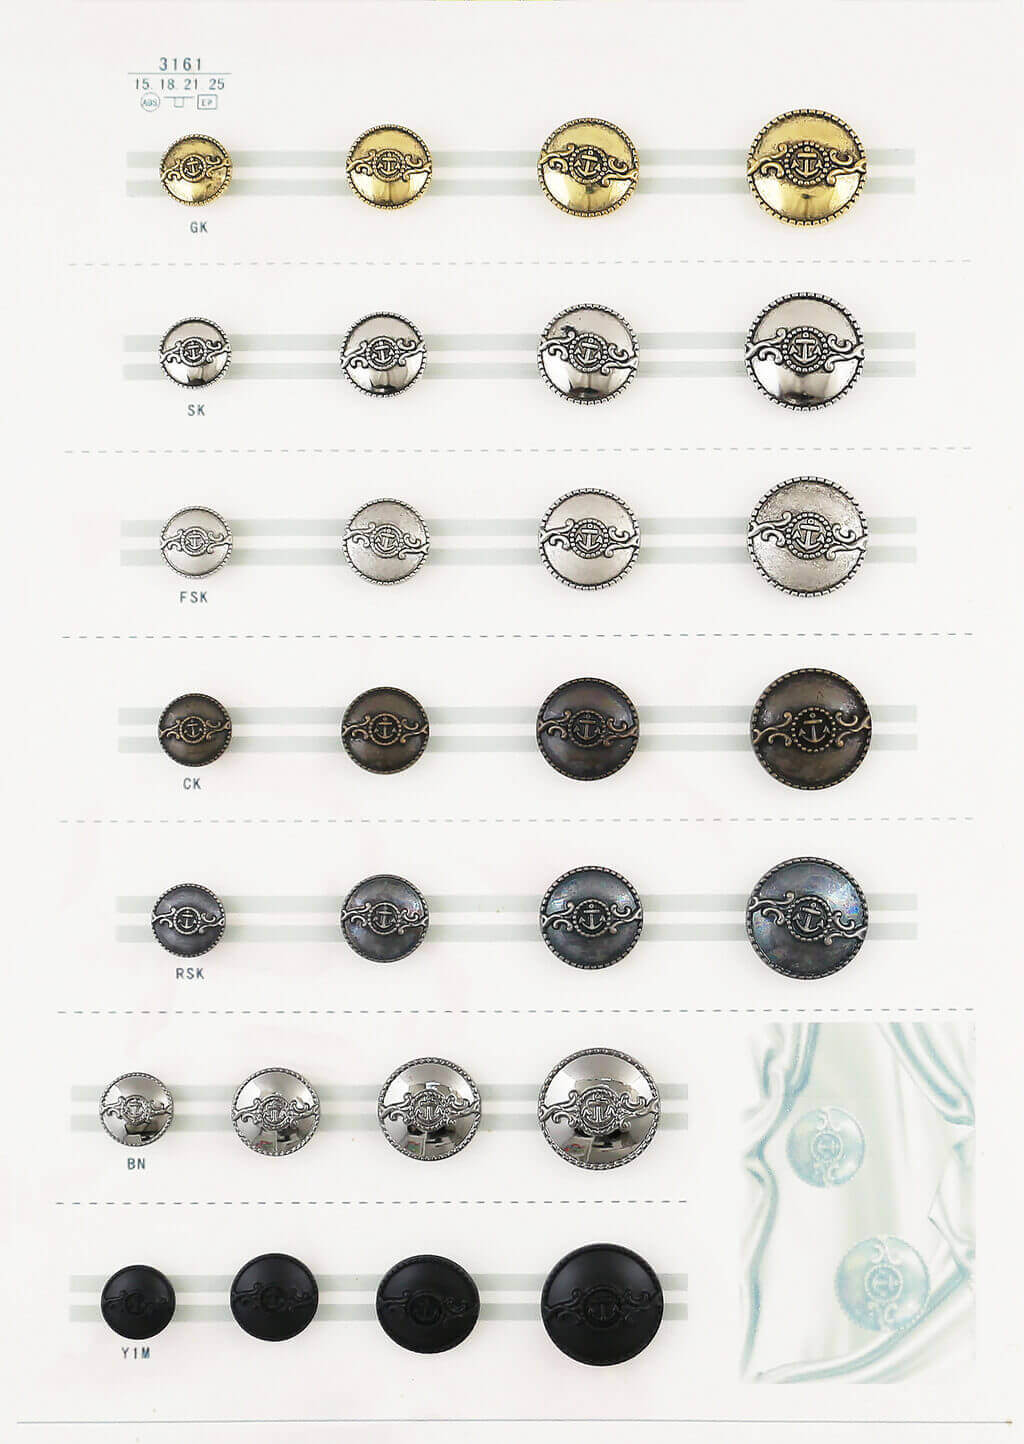 abs shank button catalogue, vintage button catalogue